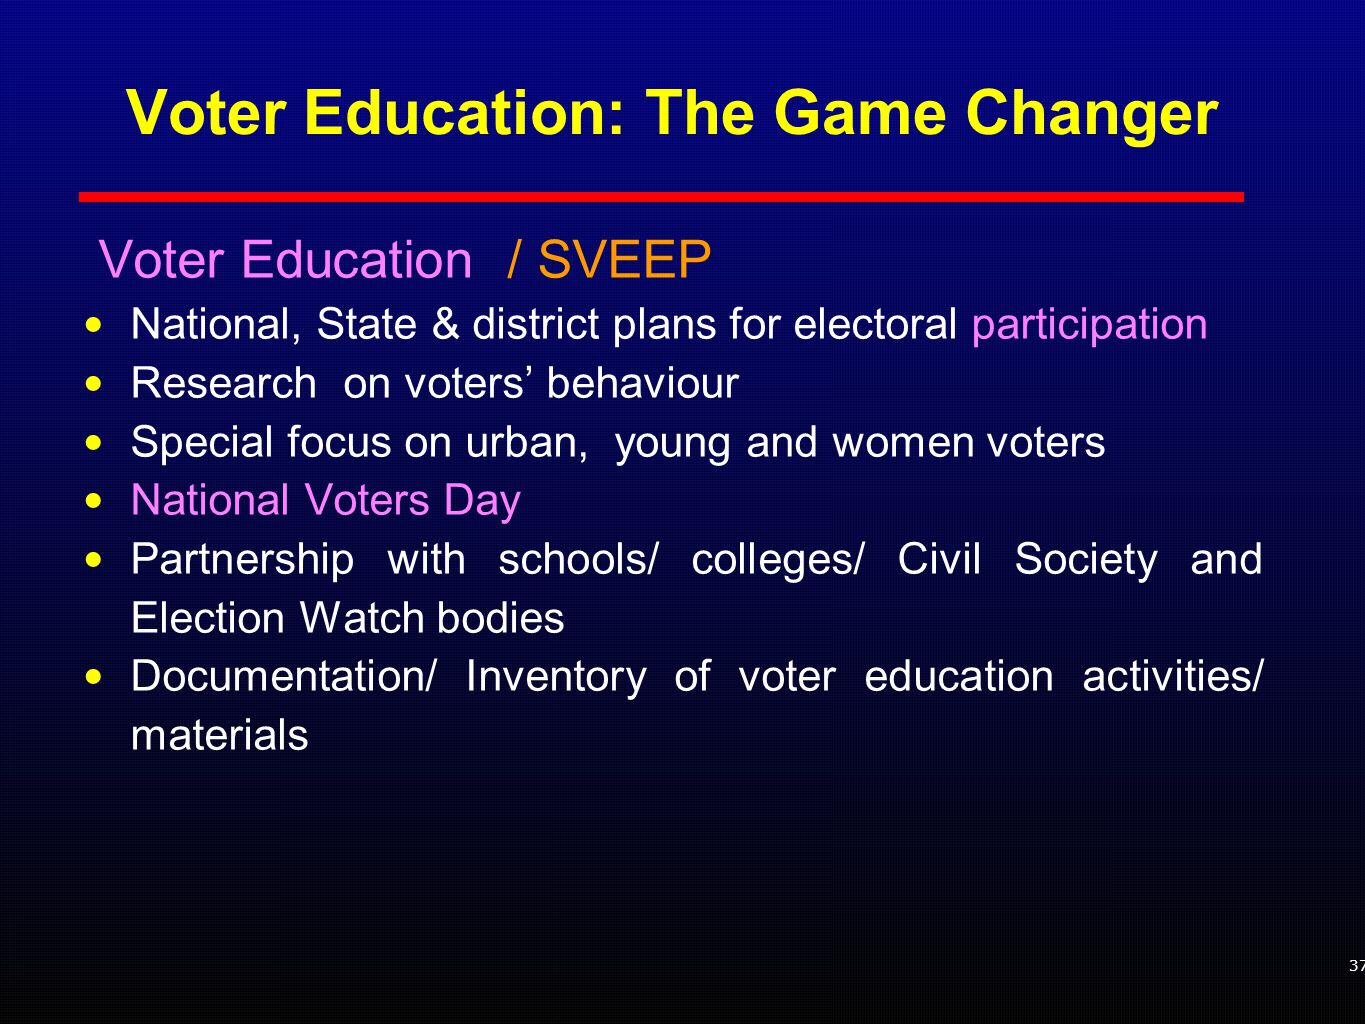 37 Voter Education / SVEEP National, State & district plans for electoral participation Research on voters' behaviour Special focus on urban, young and women voters National Voters Day Partnership with schools/ colleges/ Civil Society and Election Watch bodies Documentation/ Inventory of voter education activities/ materials Voter Education: The Game Changer